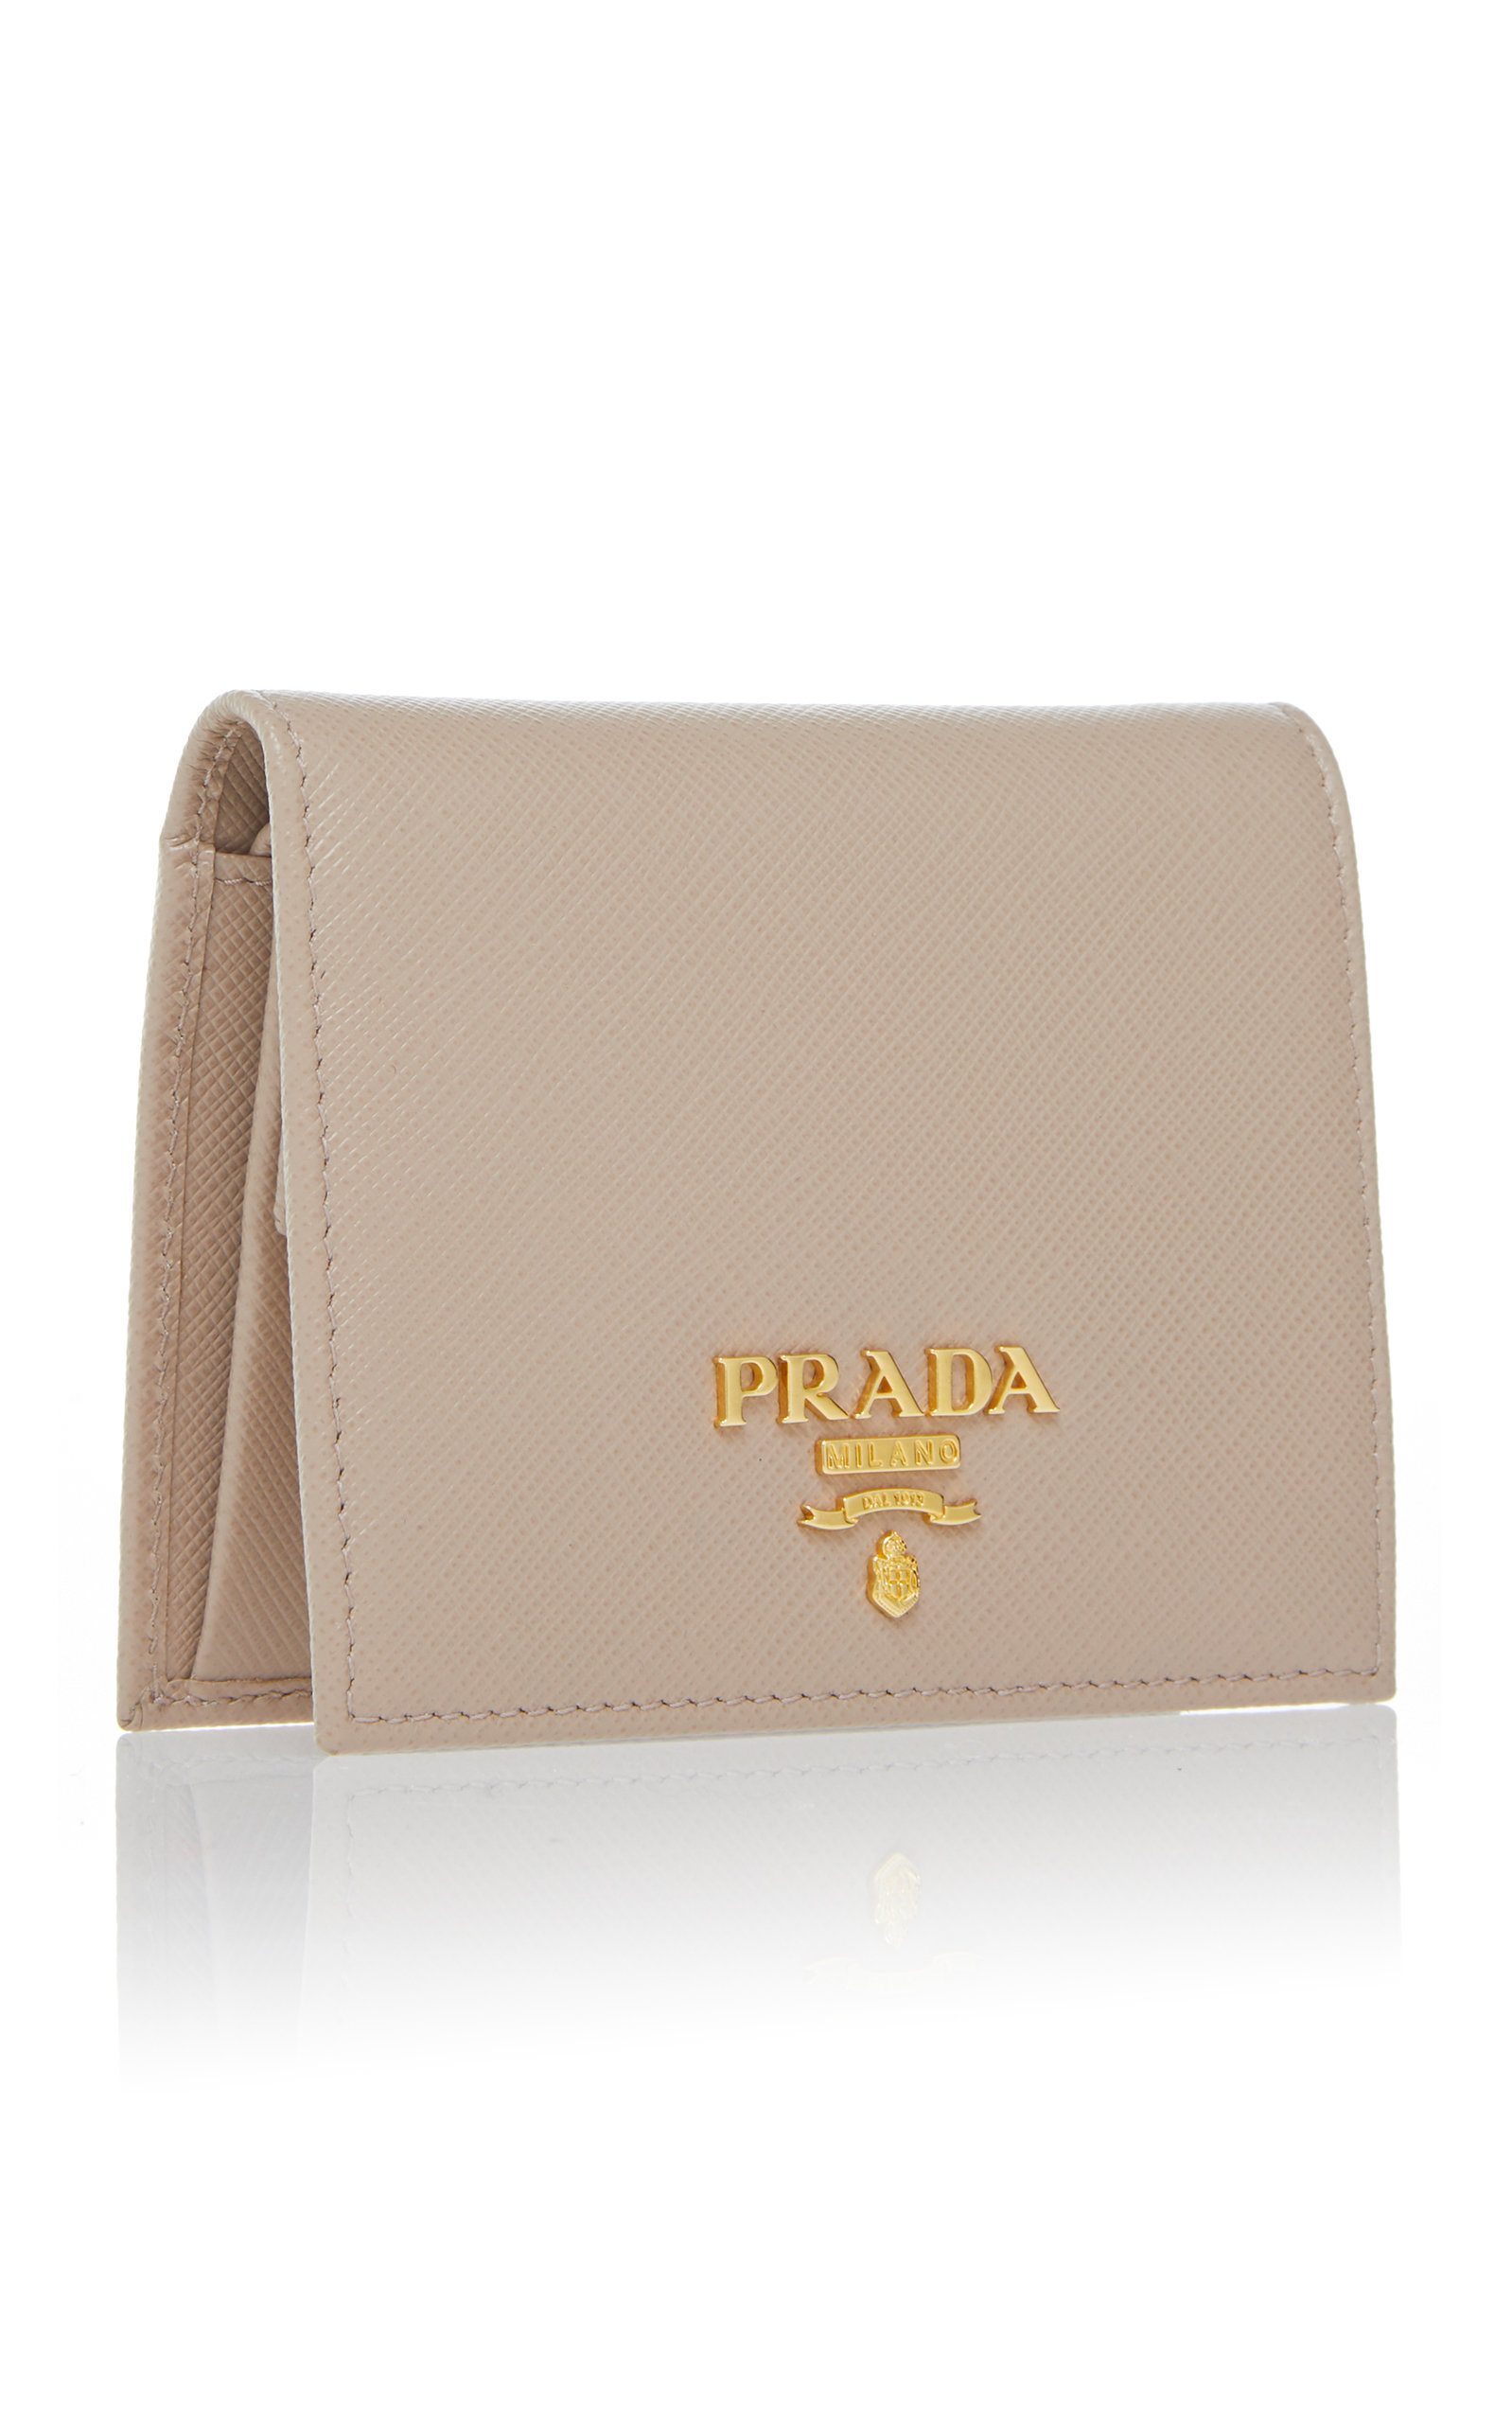 a631aac09b082 Prada Beige Wallet - Best Photo Wallet Justiceforkenny.Org